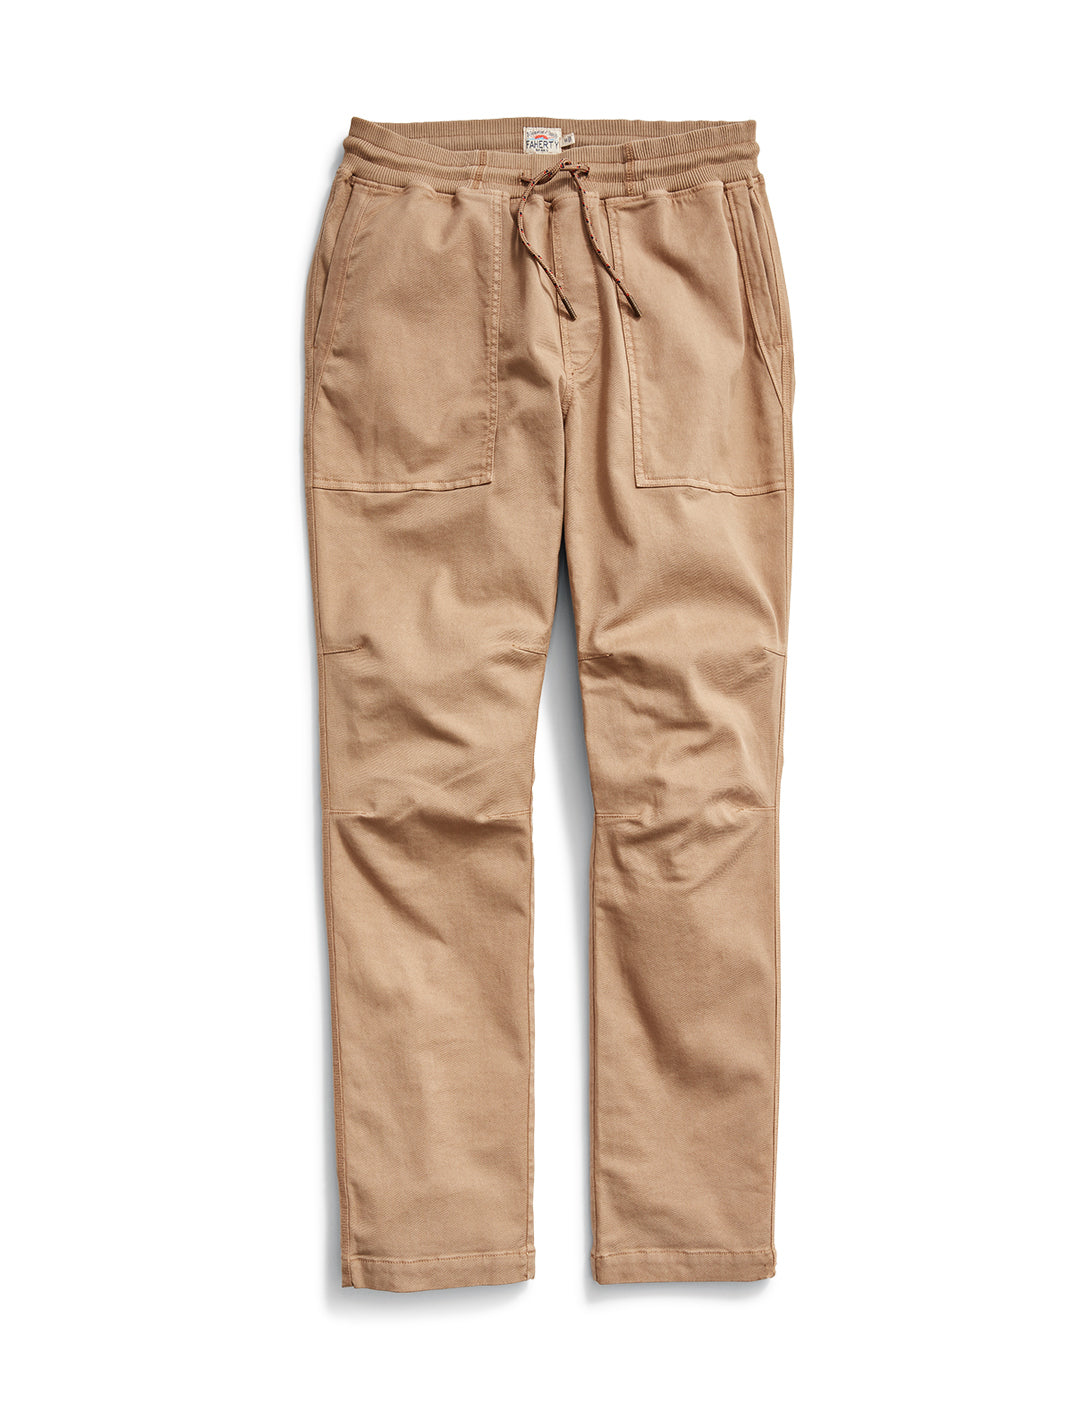 Traveler Pant in Desert Sand